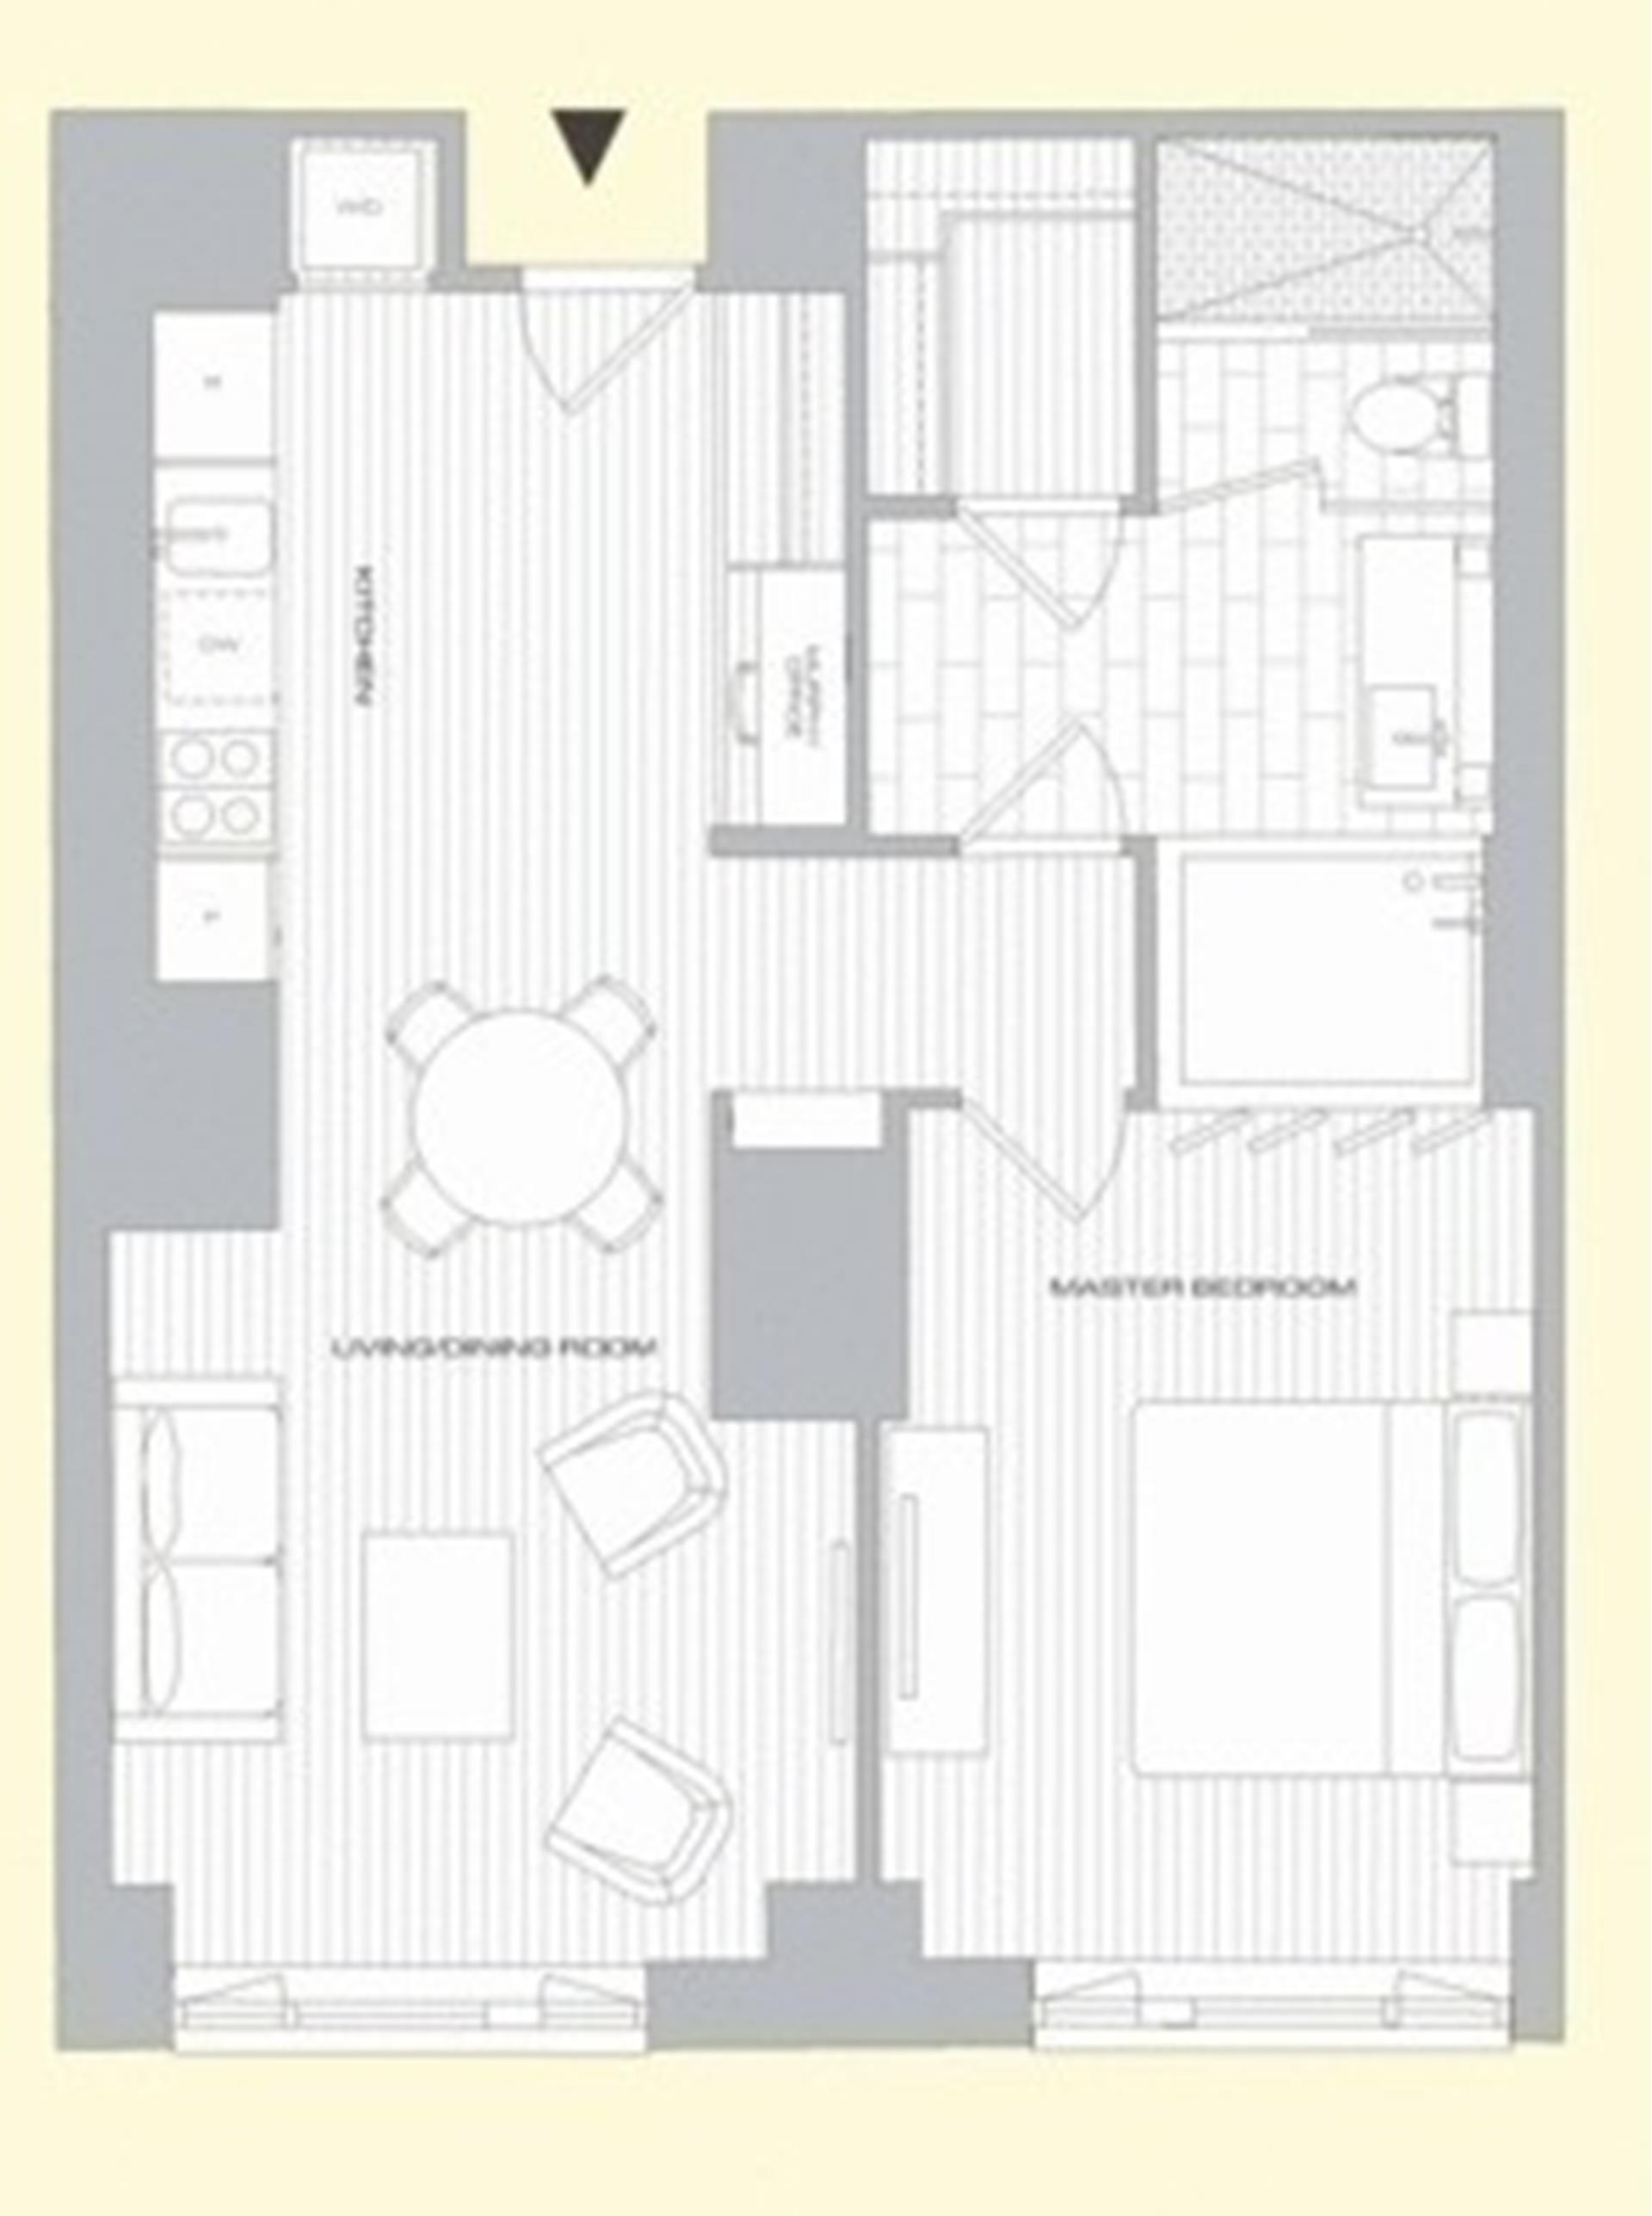 Floor plan of 15 William, 15 William St, 31G - Financial District, New York